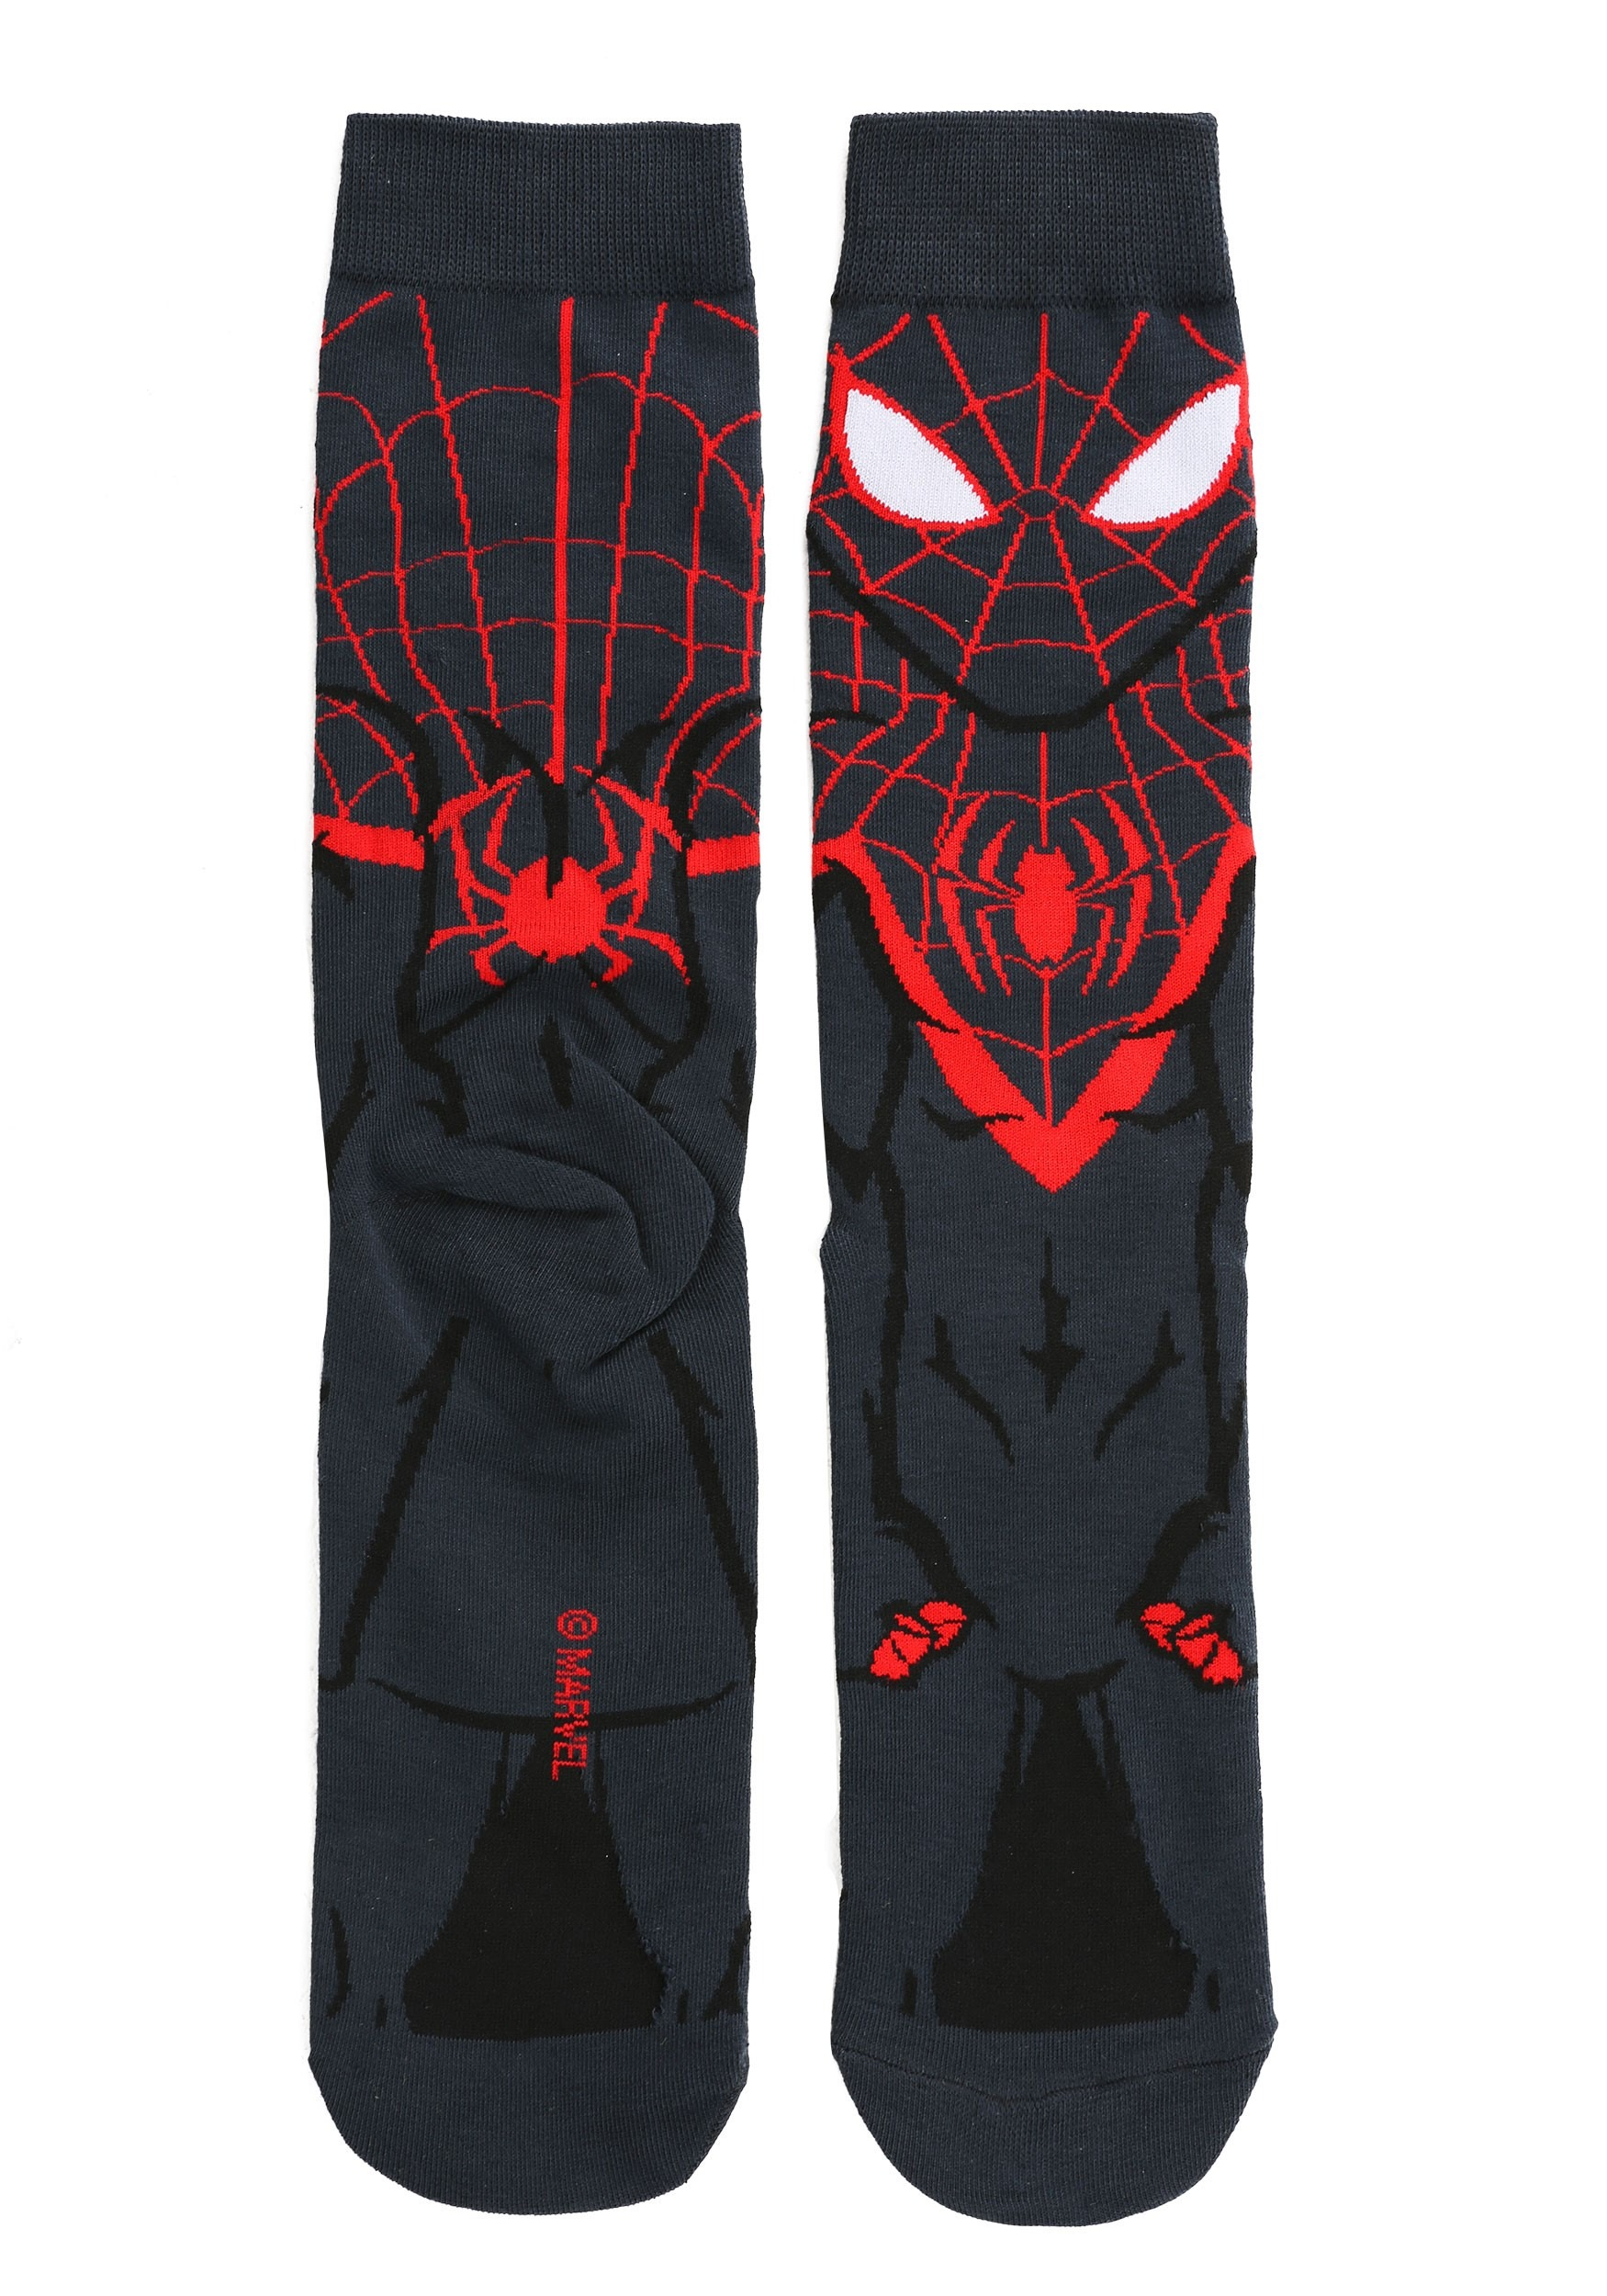 Spider-Man Miles Morales 360 Character Crew Socks